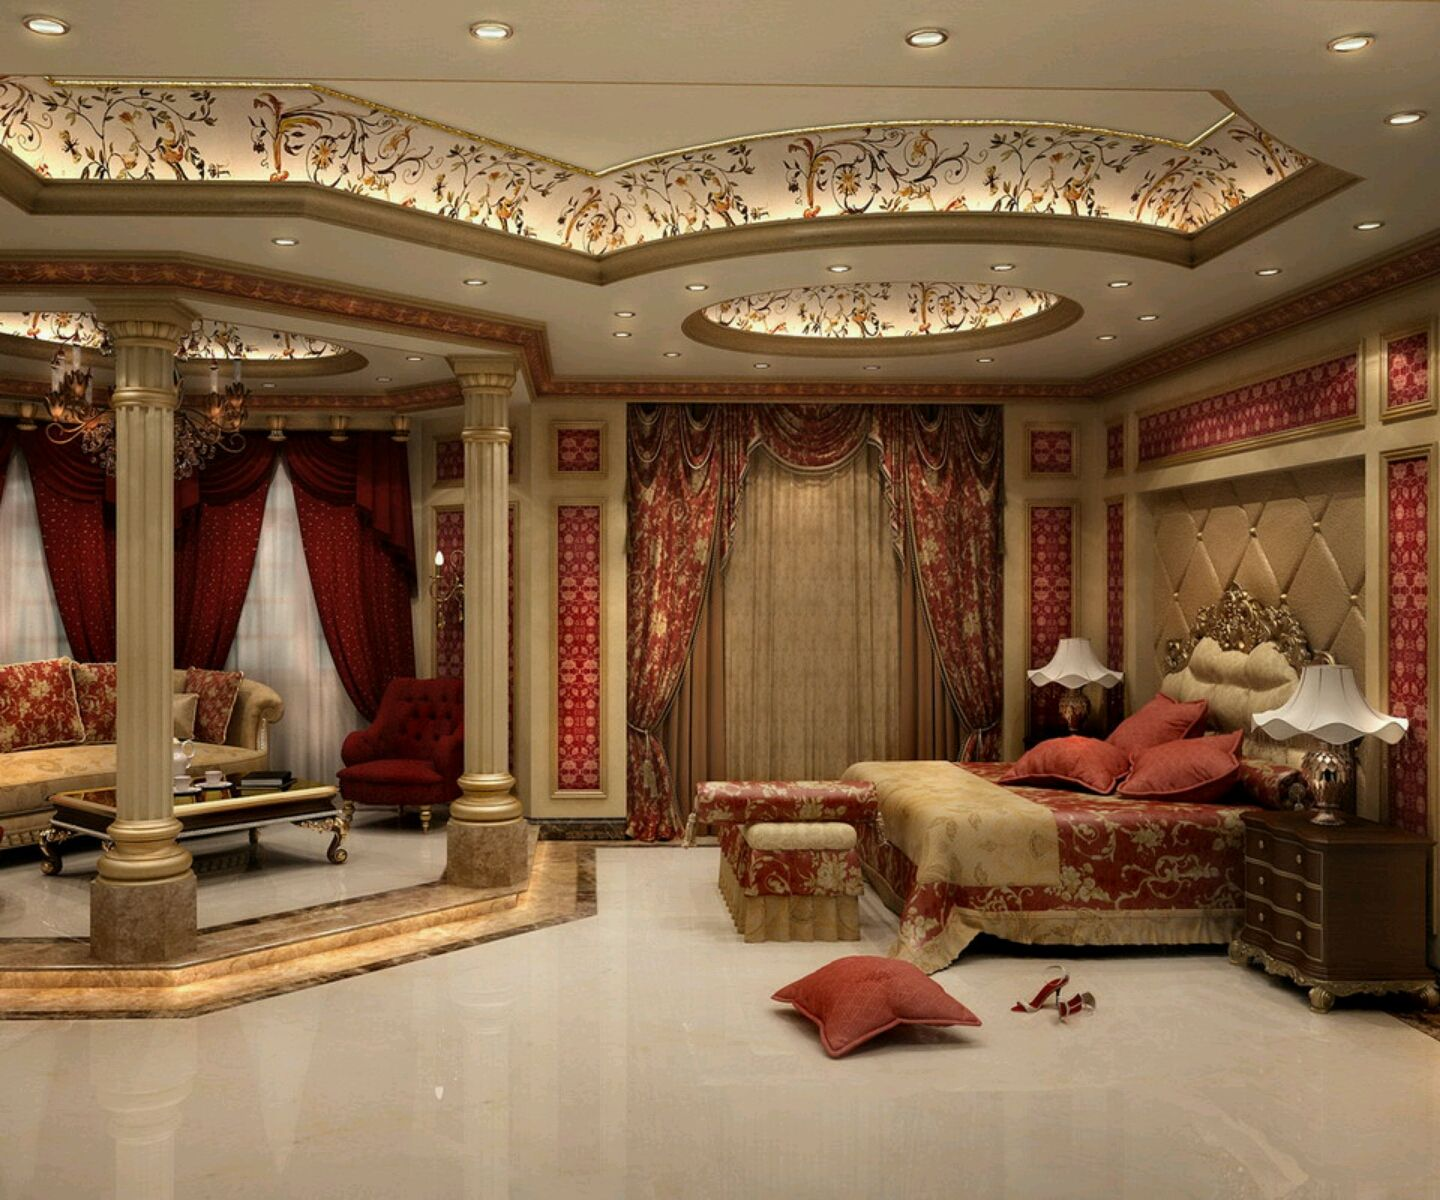 Ceiling Decoration Ideas luxury ceiling designs for master bedroom with red curtains